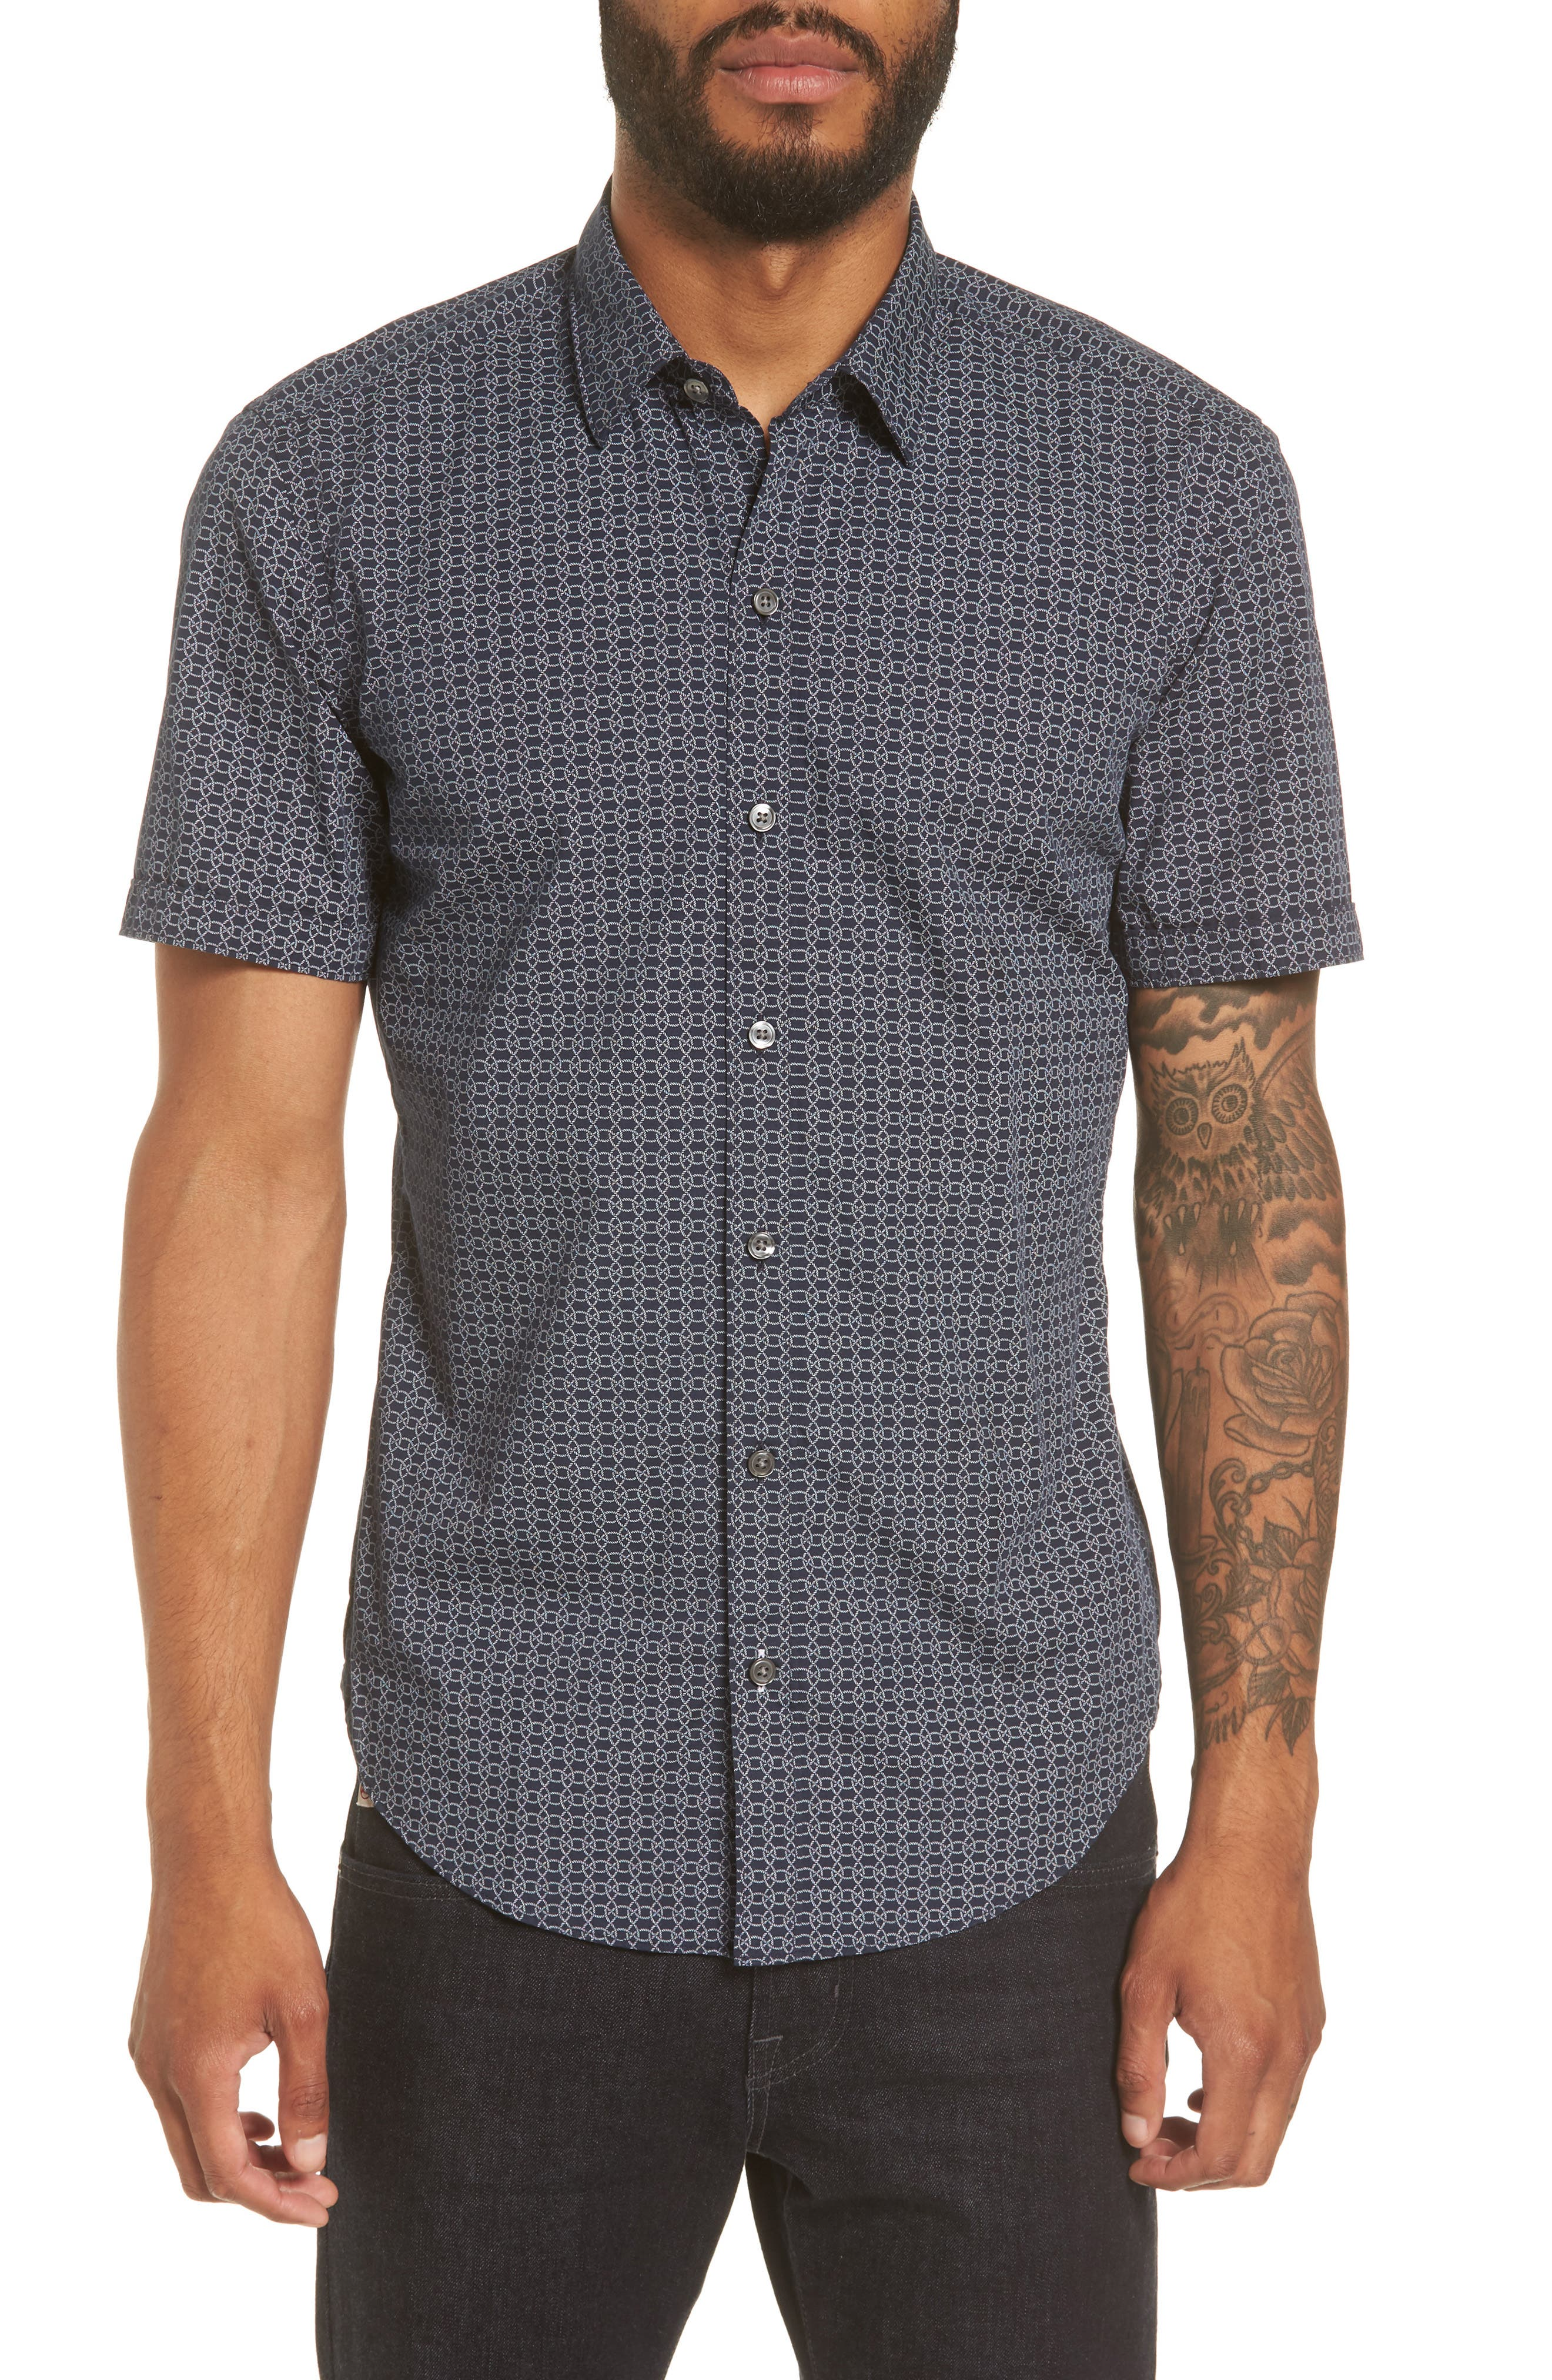 Alternate Image 1 Selected - BOSS Robb Sharp Fit Knot Print Sport Shirt